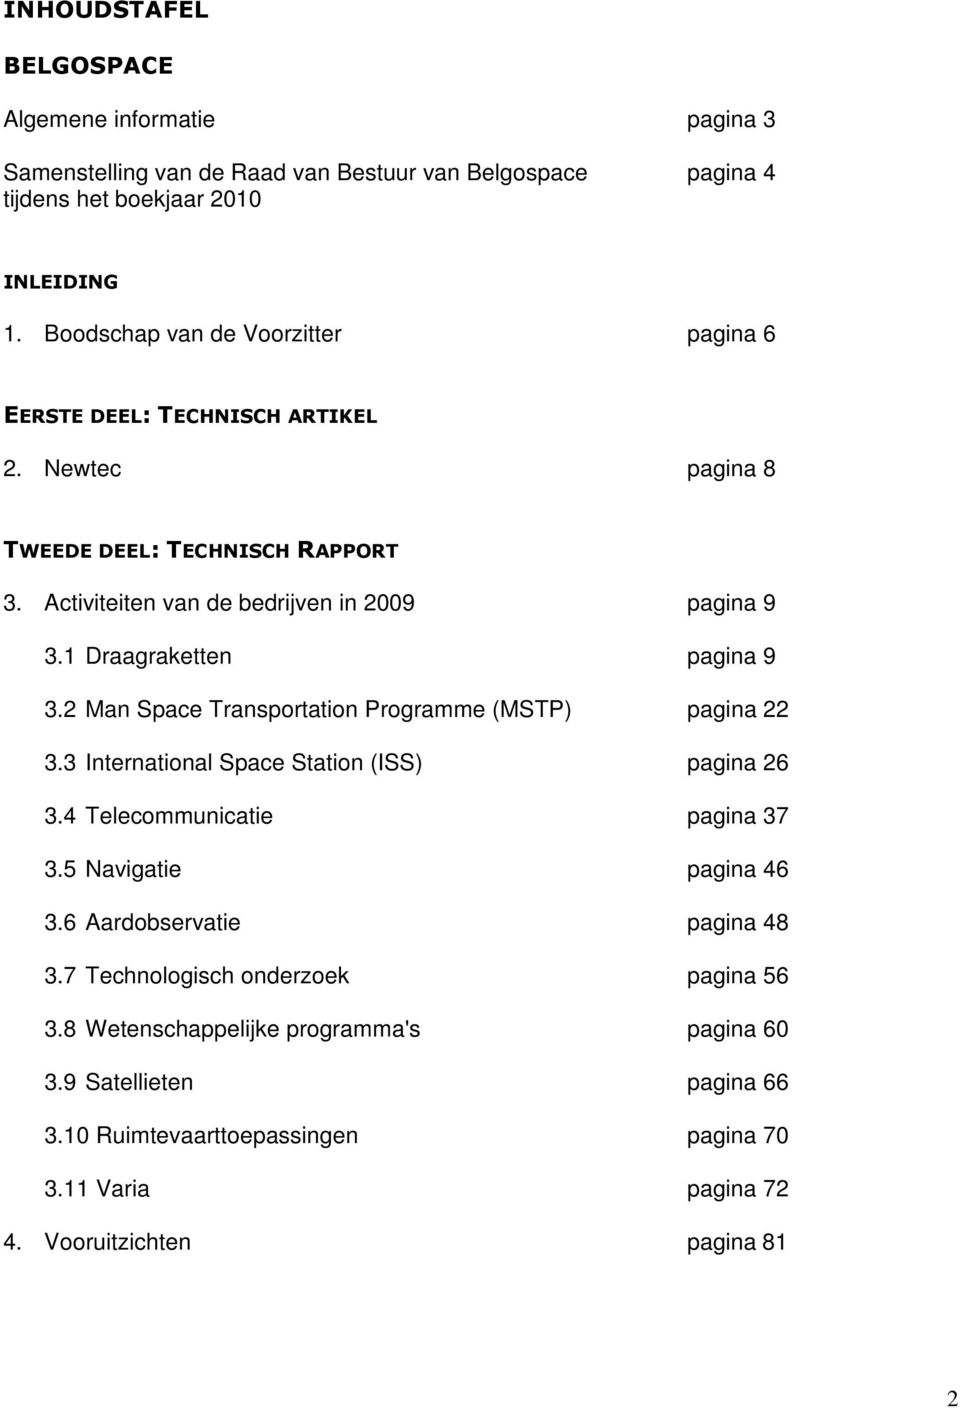 1 Draagraketten pagina 9 3.2 Man Space Transportation Programme (MSTP) pagina 22 3.3 International Space Station (ISS) pagina 26 3.4 Telecommunicatie pagina 37 3.